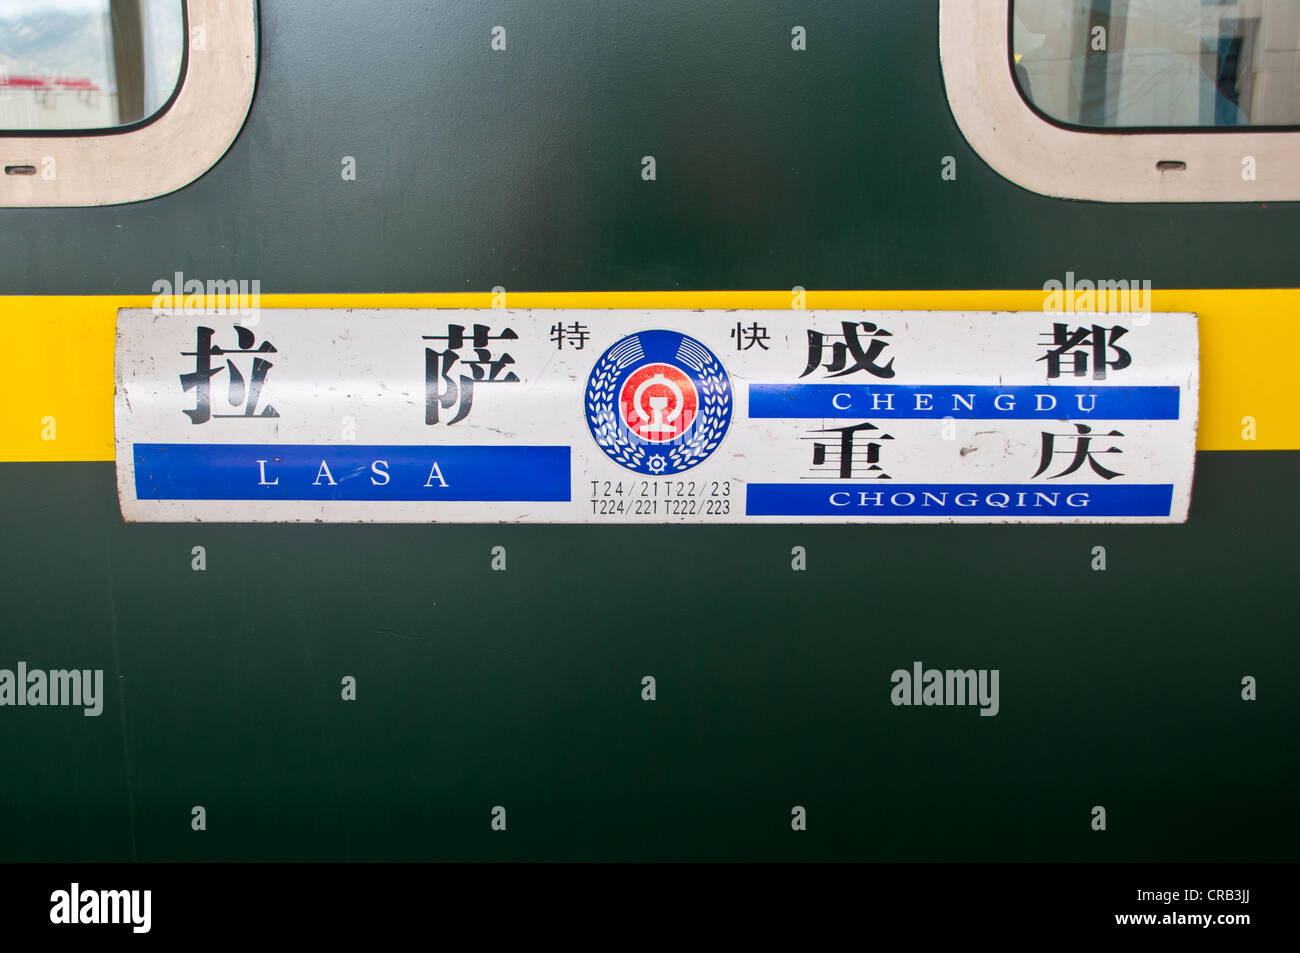 Railway carriage on the train line from Lhasa to Chengdu, Tibet, Asia - Stock Image